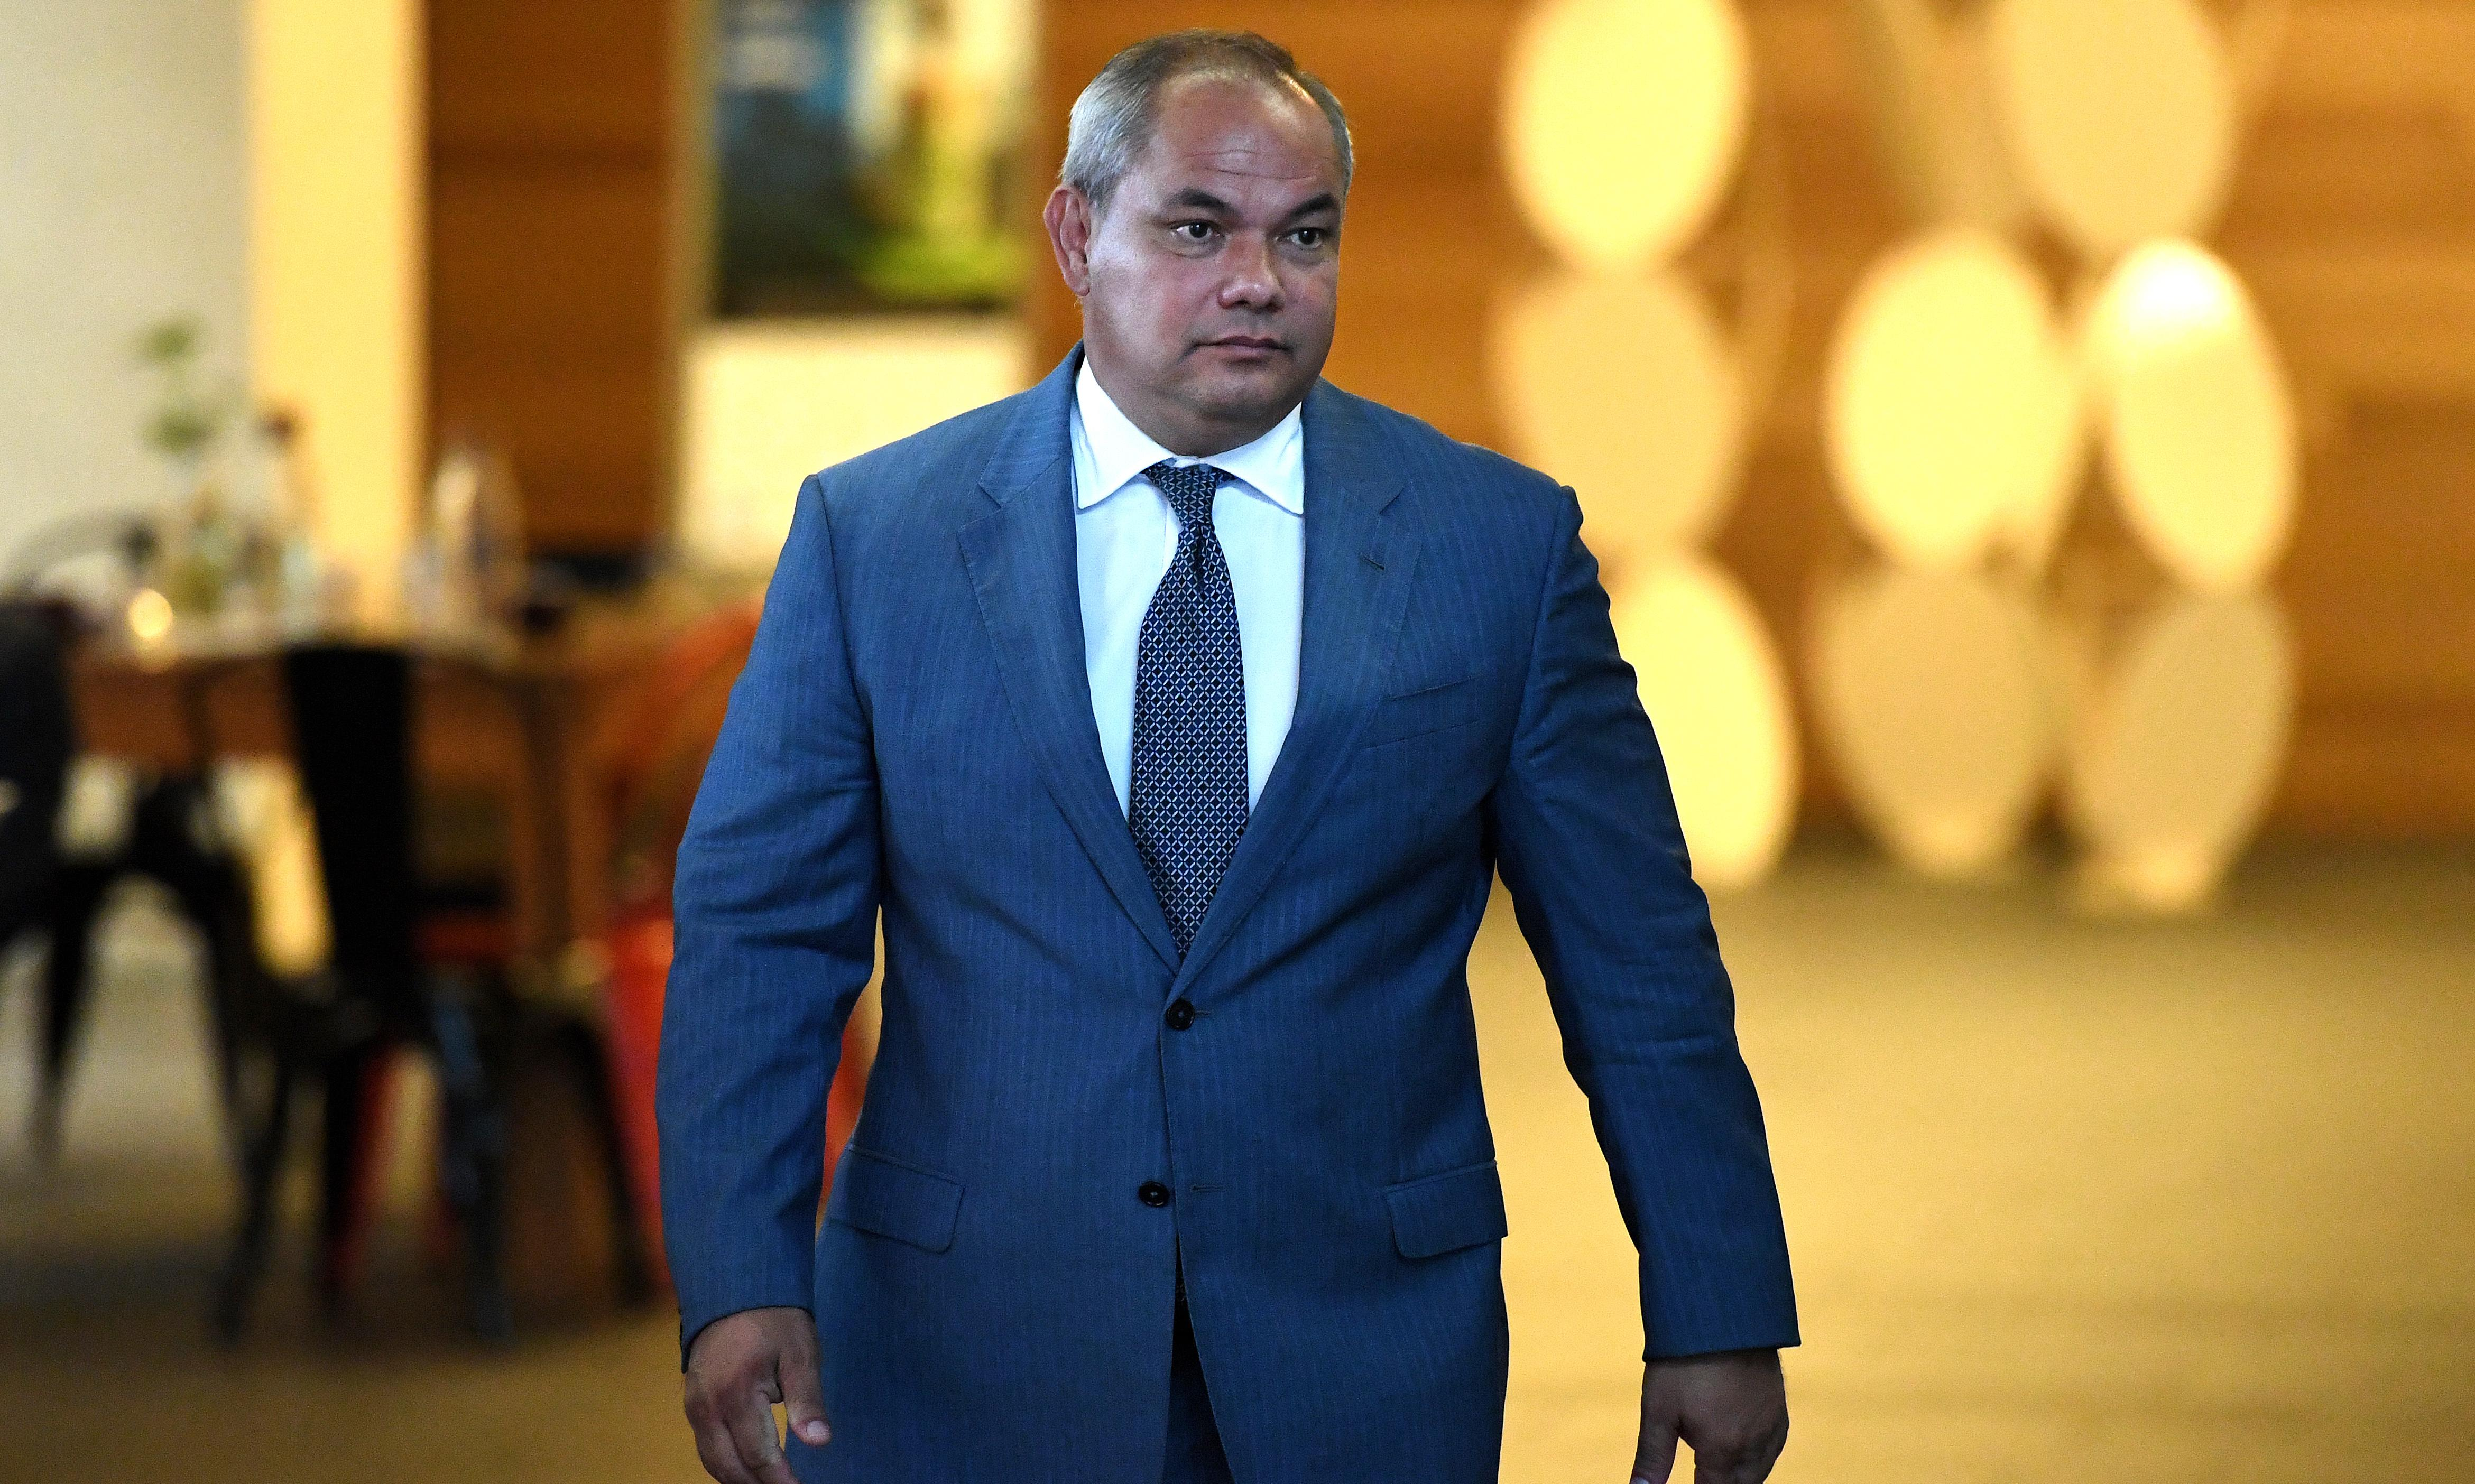 Gold Coast mayor Tom Tate could face misconduct proceedings after watchdog's findings